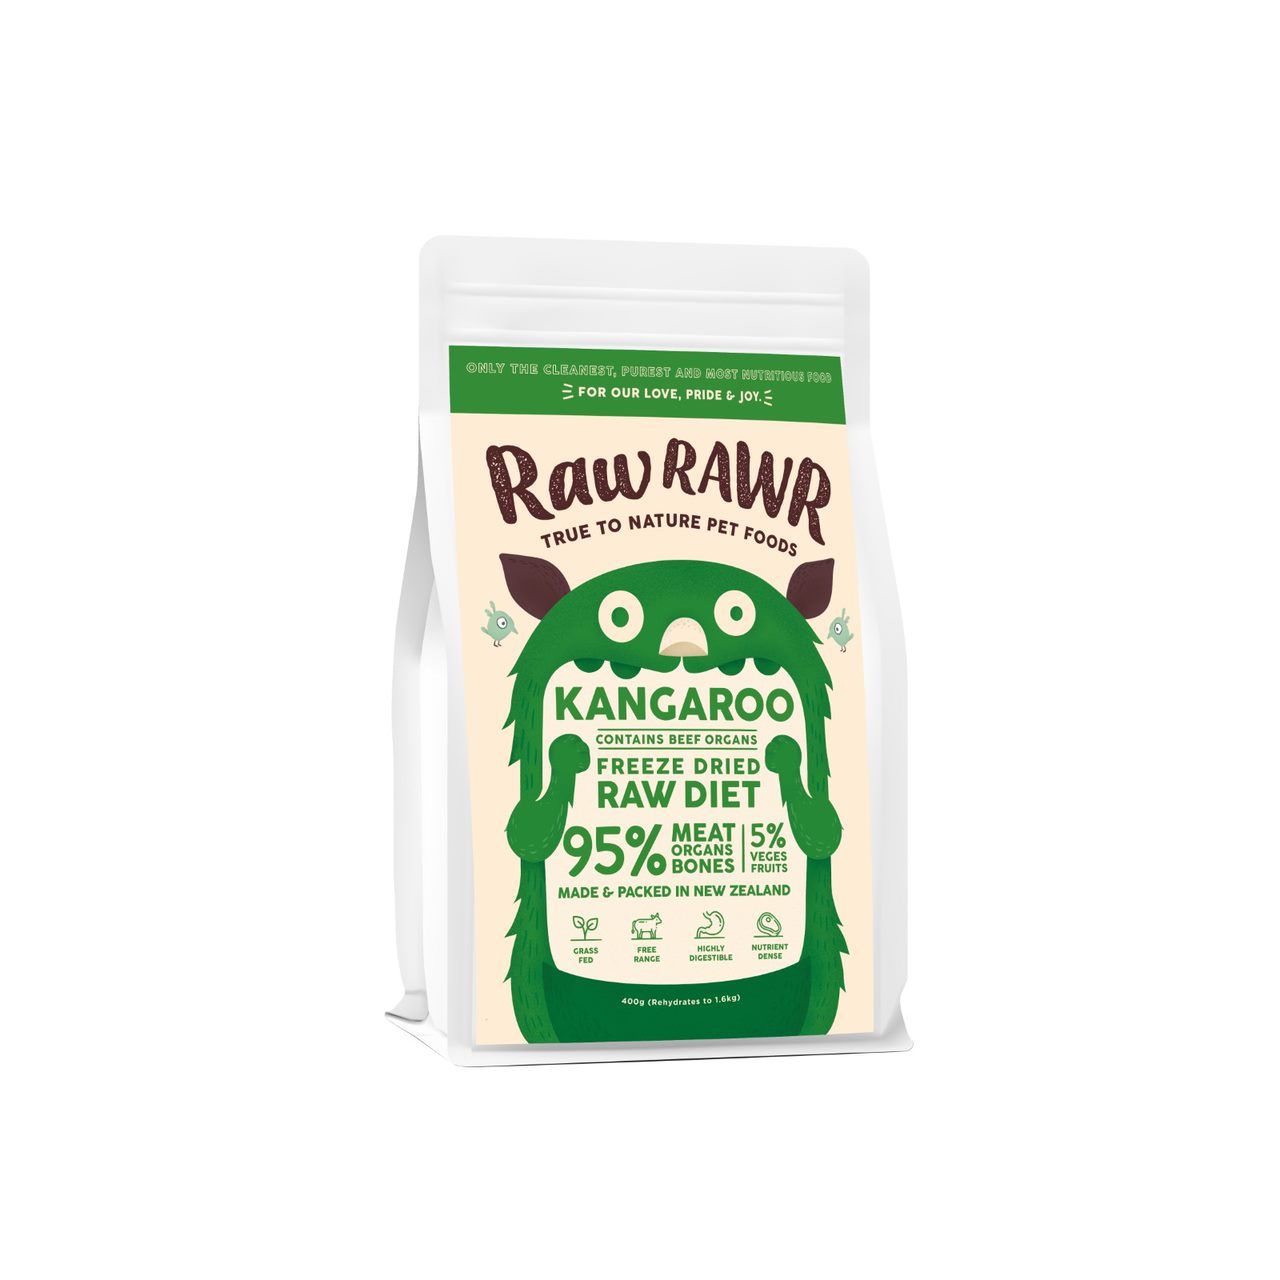 Raw Rawr - Kangaroo (contains beef organs)